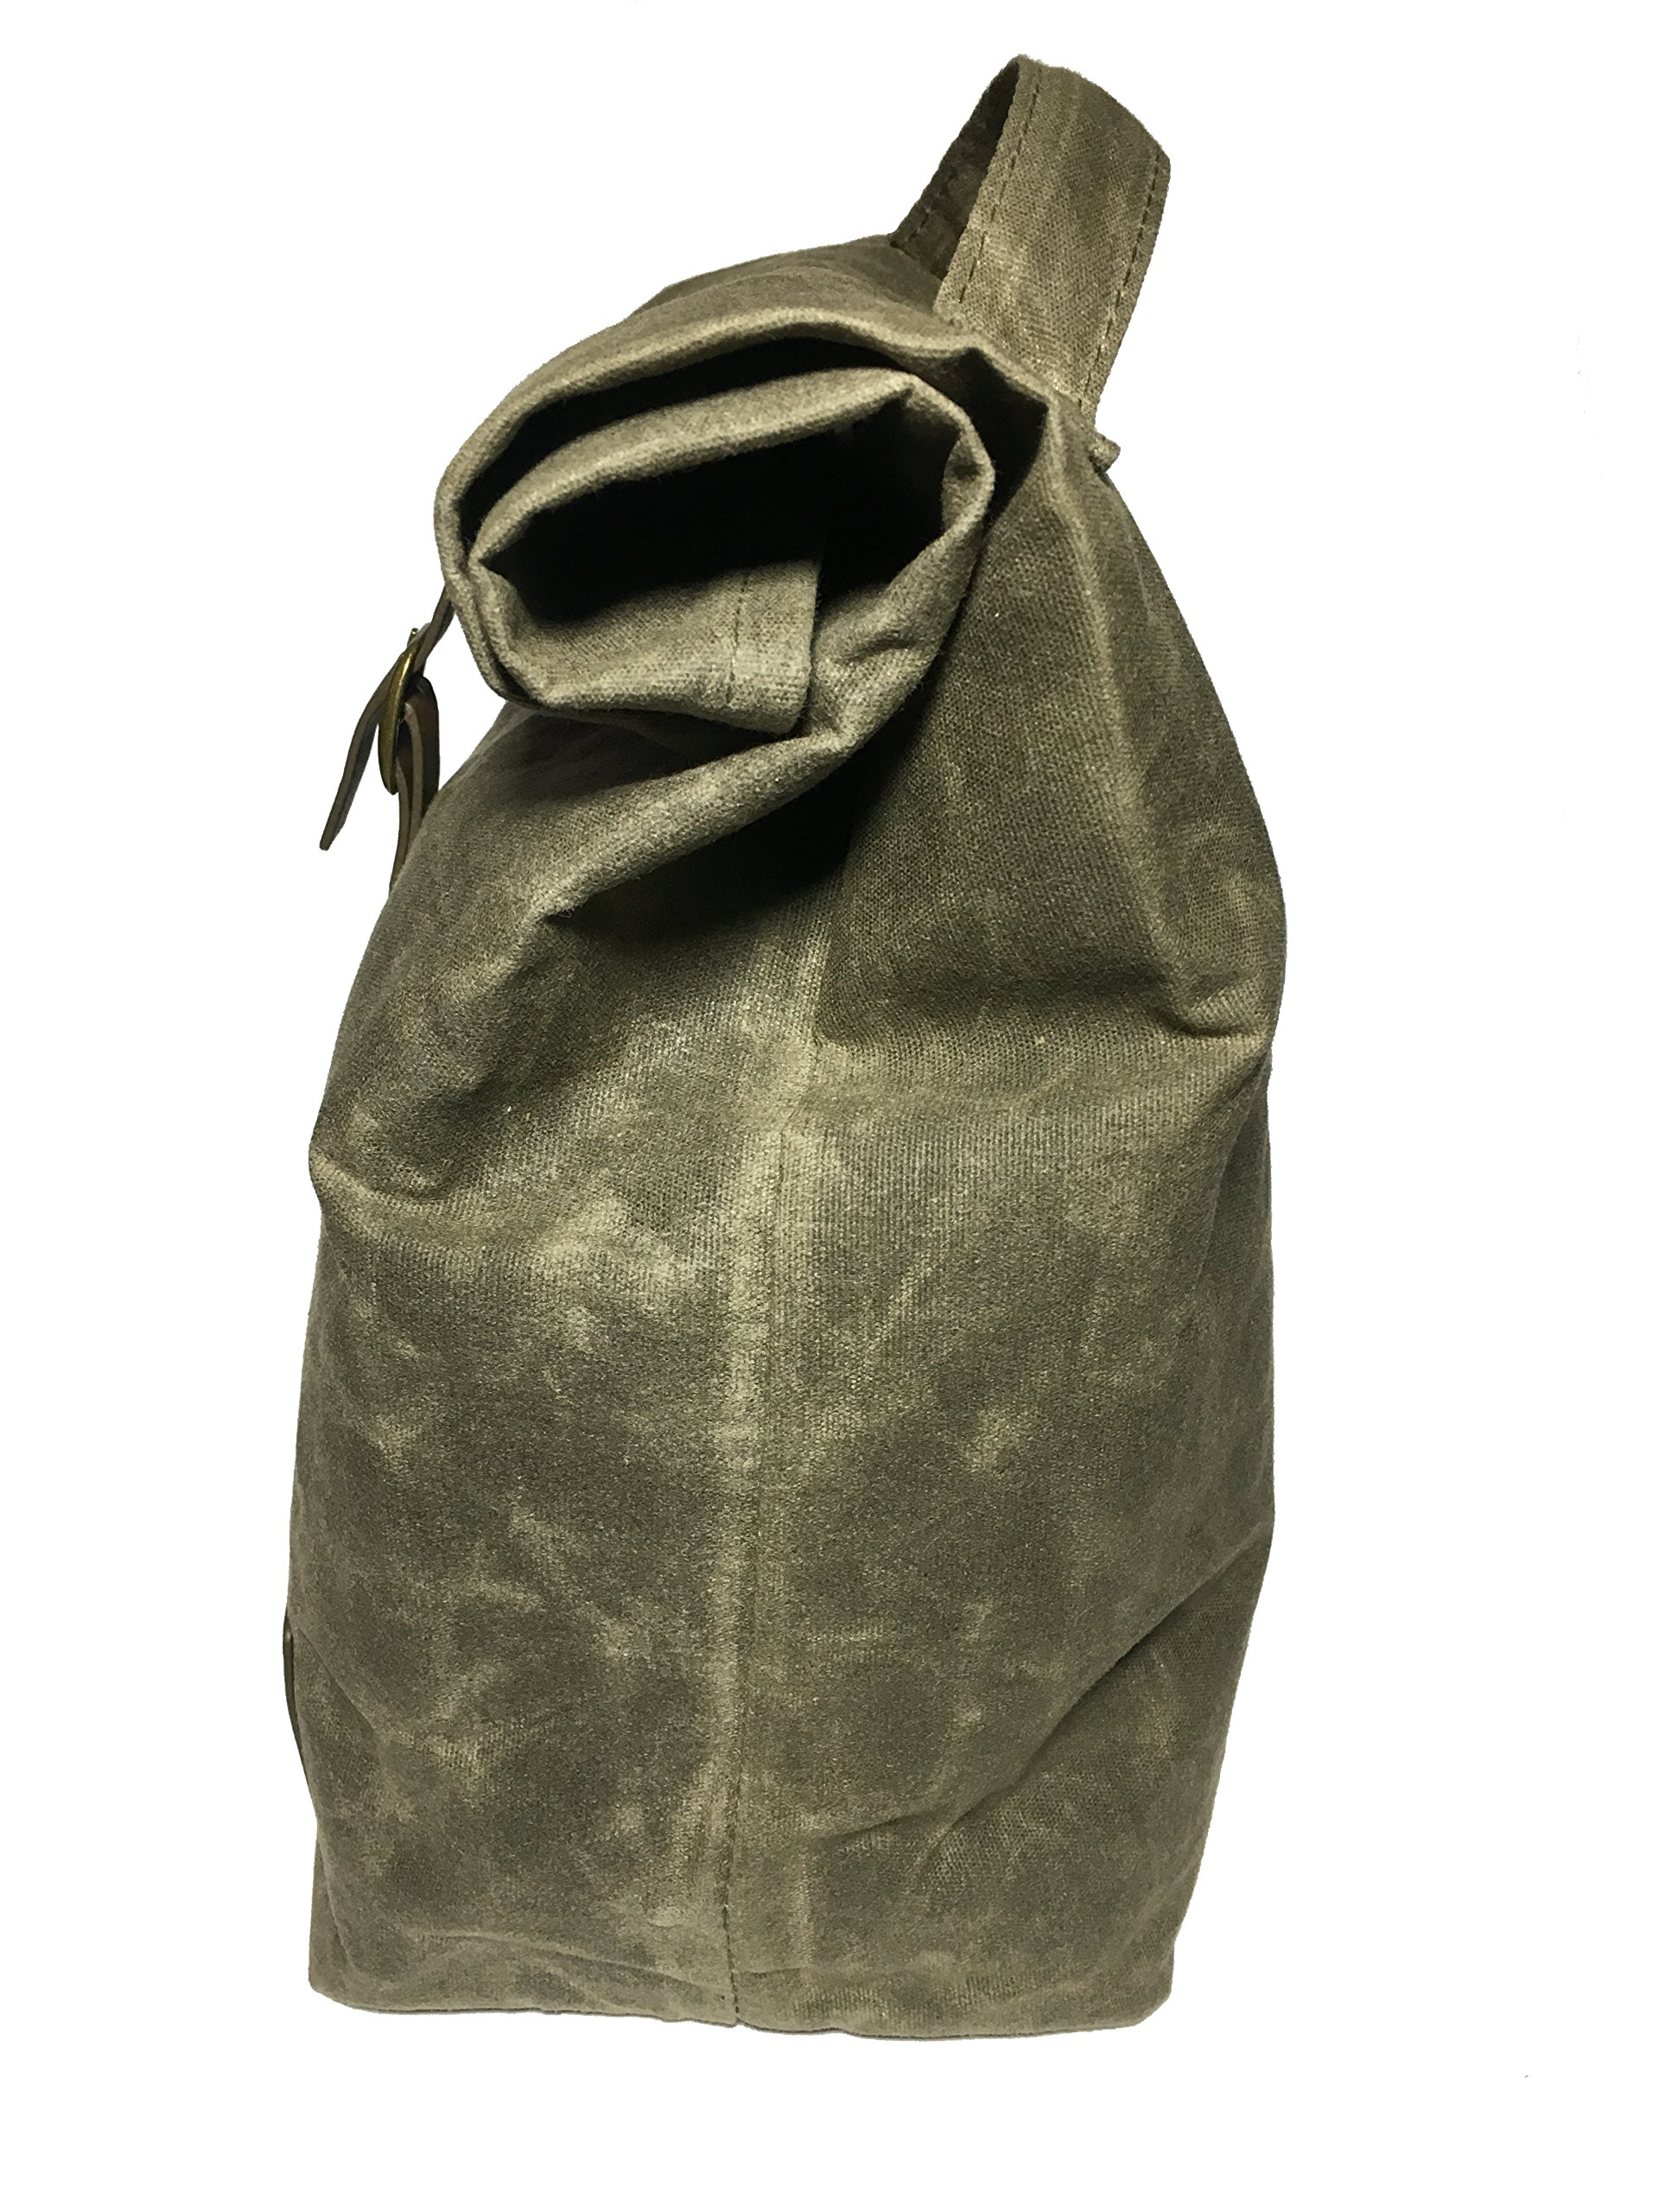 85607c100988 Details about Insulated Waxed Canvas Lunch Bag For Men, Women With Handle  and Genuine Leather